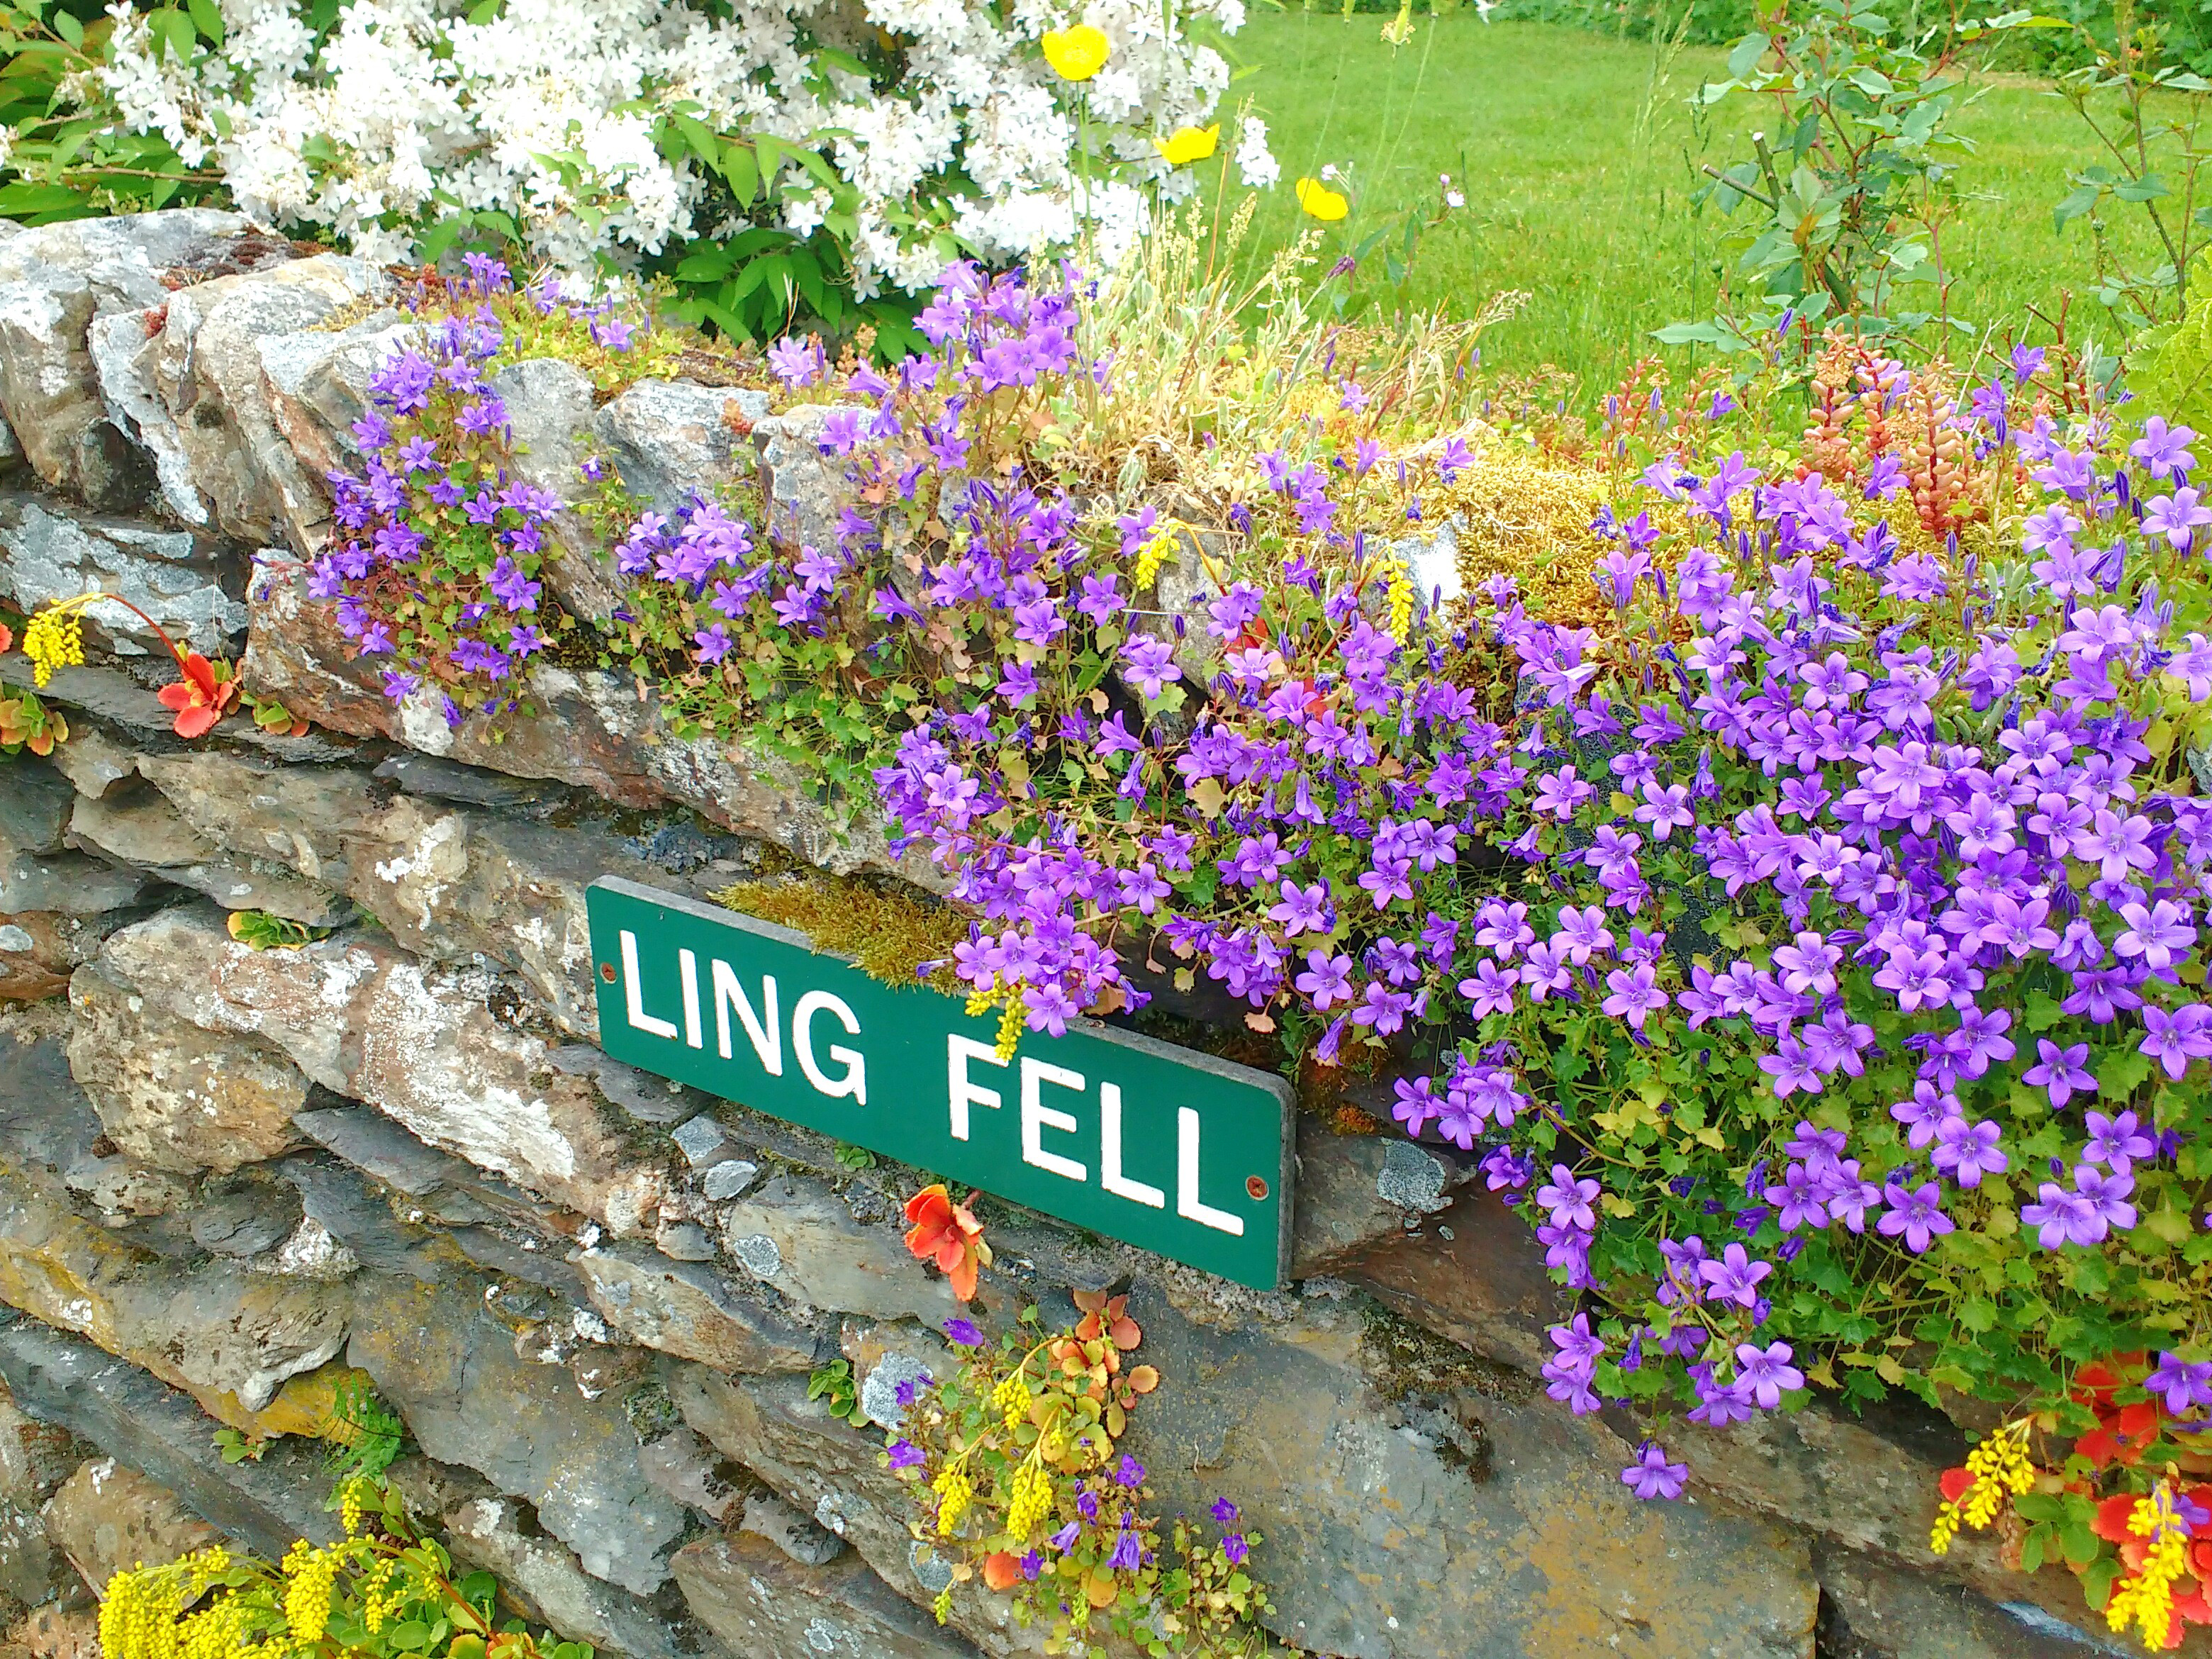 Ling Fell Cottage